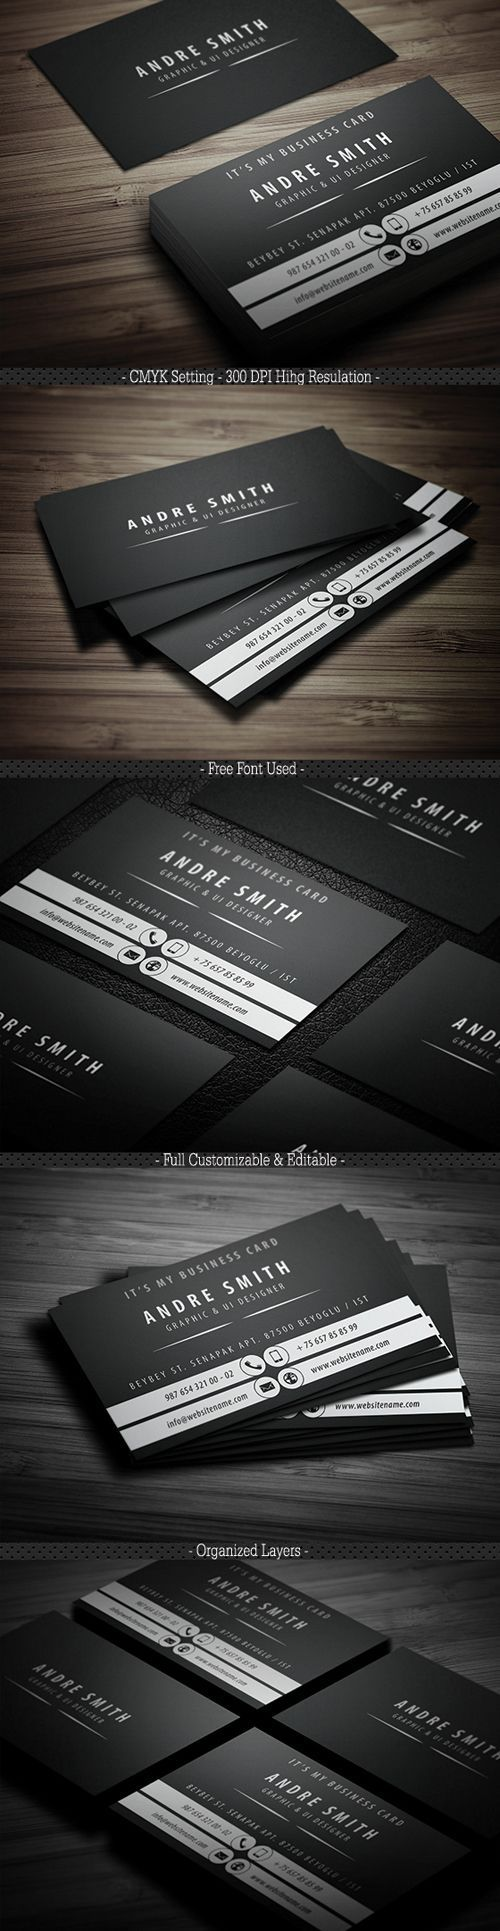 78 best business cards images on pinterest graphics branding buy black tone business card by yfguney on graphicriver full layered psd filescustomizable and editable cmyk setting 300 dpi high resulation x x with b magicingreecefo Images